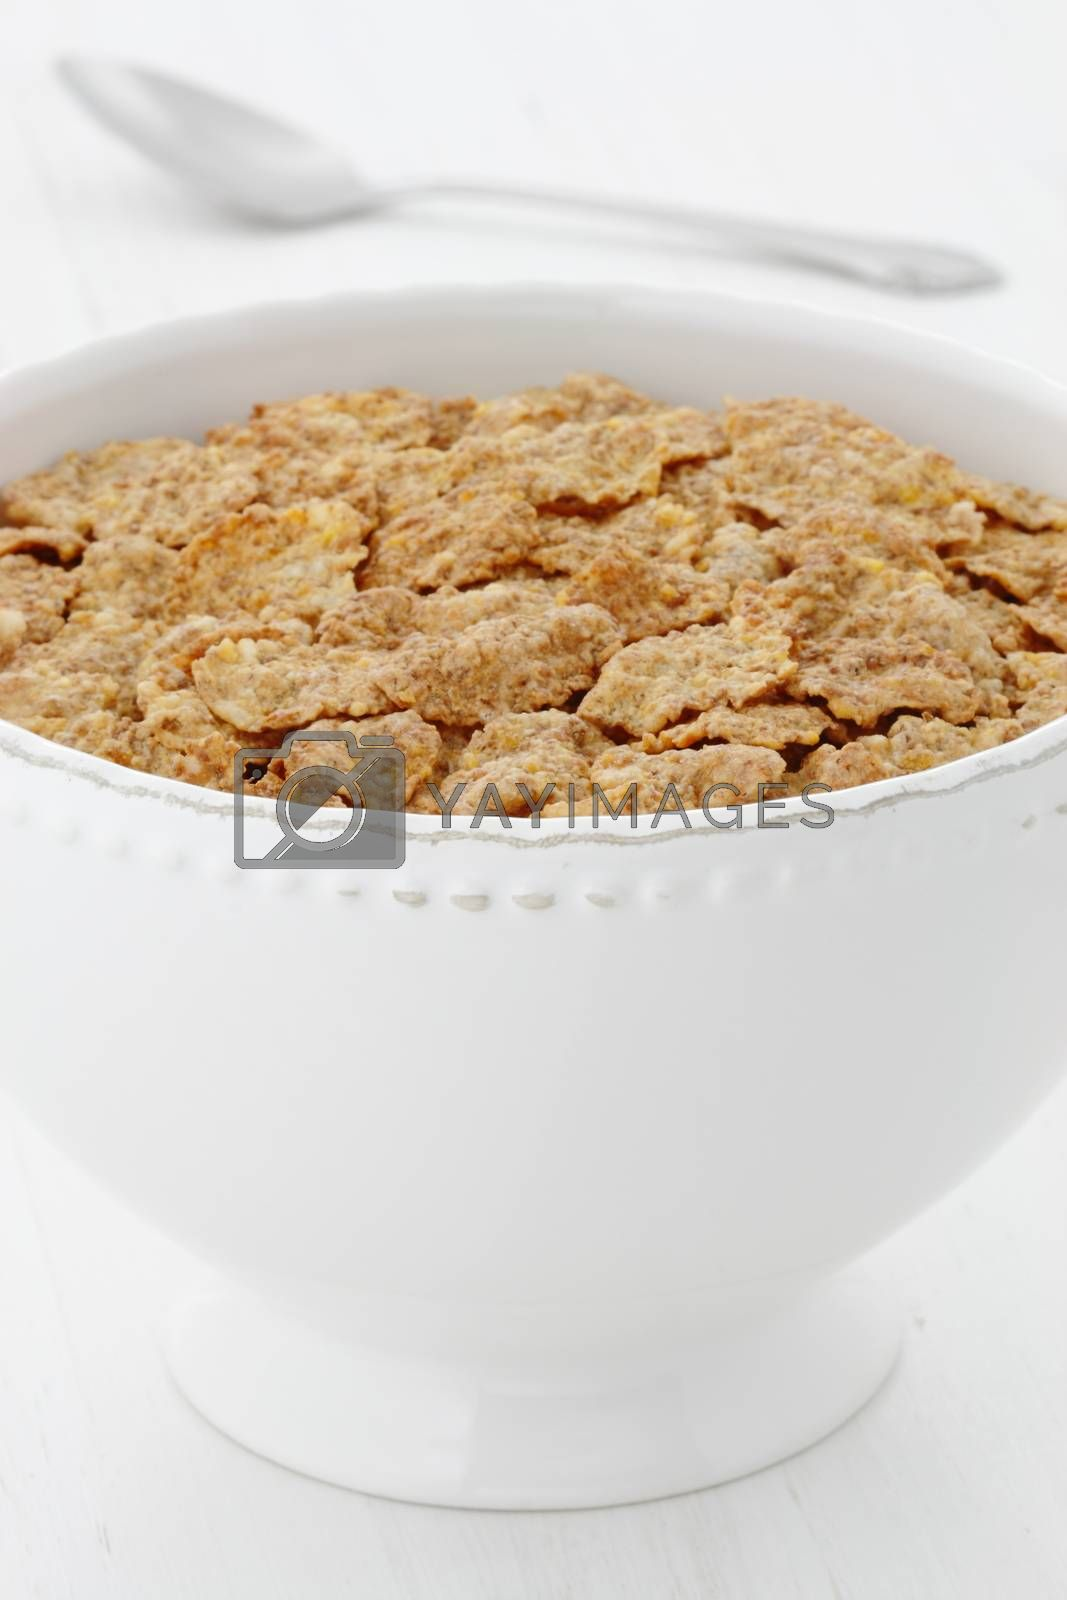 whole wheat cereal, delicious and healthy breakfast, often eaten in combination with yogurt or milk.